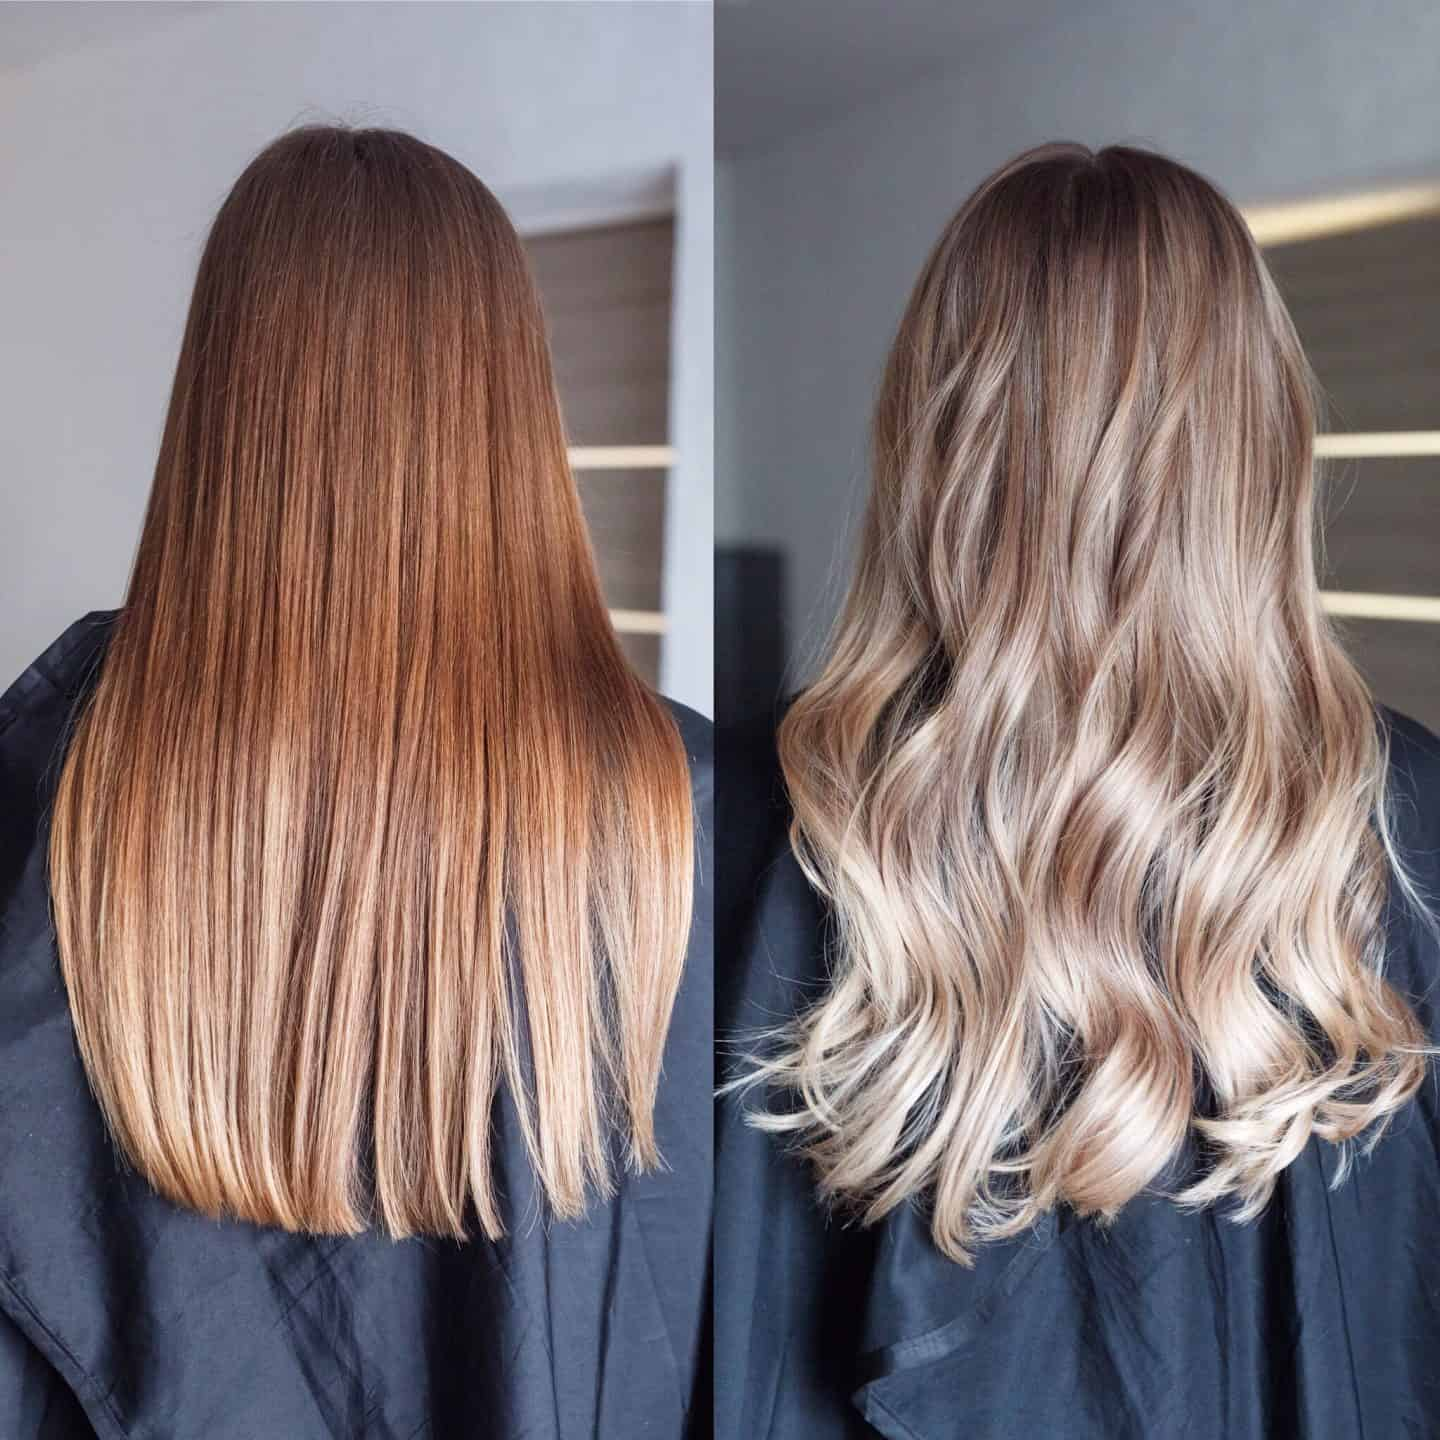 remove brassy tones, how to remove brassy tones from brown hair, how to get rid of brassy tones, will ash hair color offset orange brassy tones, blue toner for orange hair